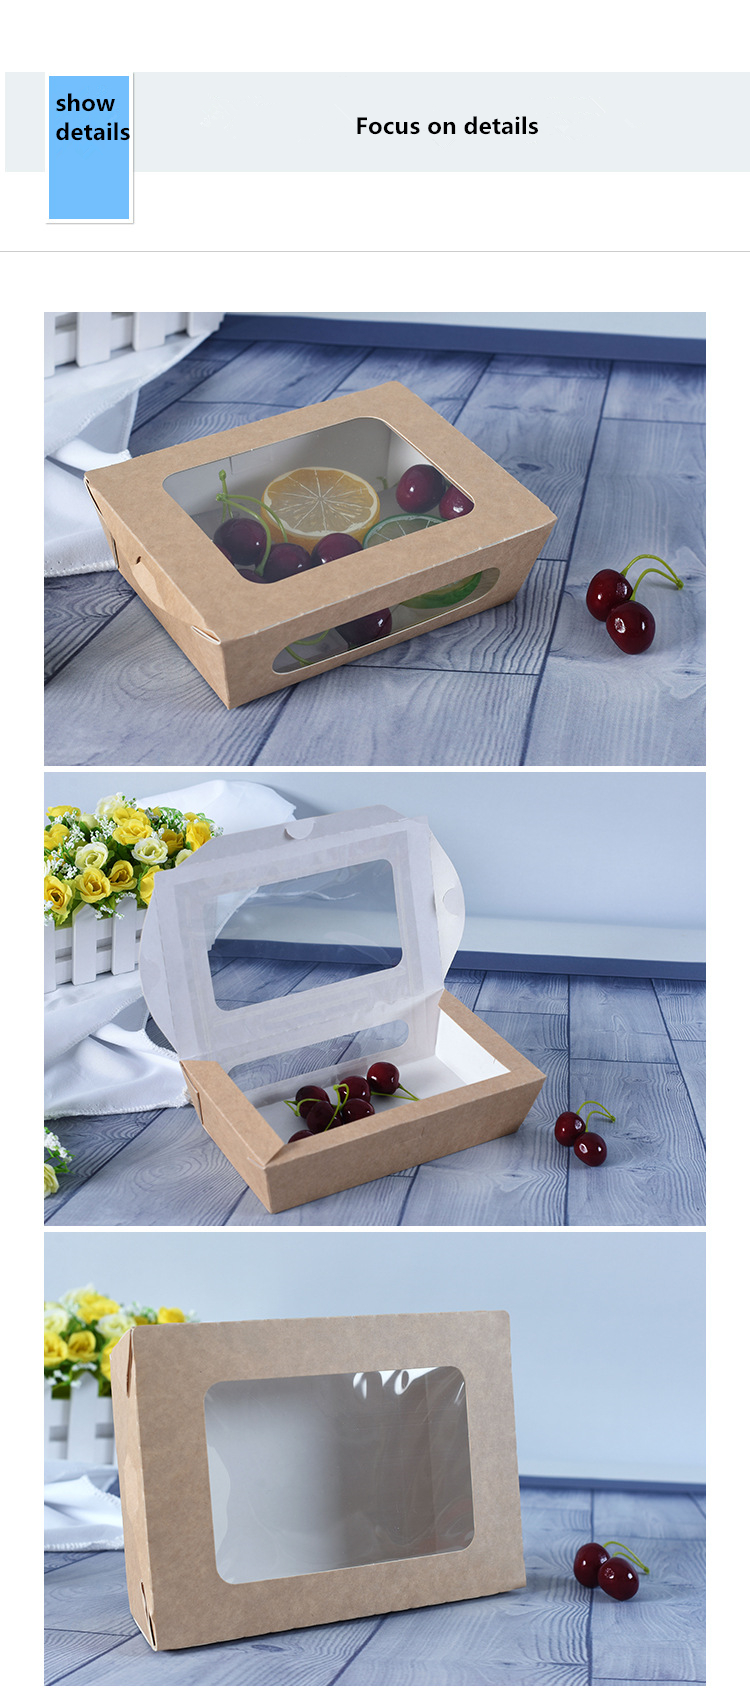 Cake Boxes Boards Set 10 Sturdy Cake Boxes 10 x 10 x 5 & 10 Inch Cake Boards brown paper bag with Window